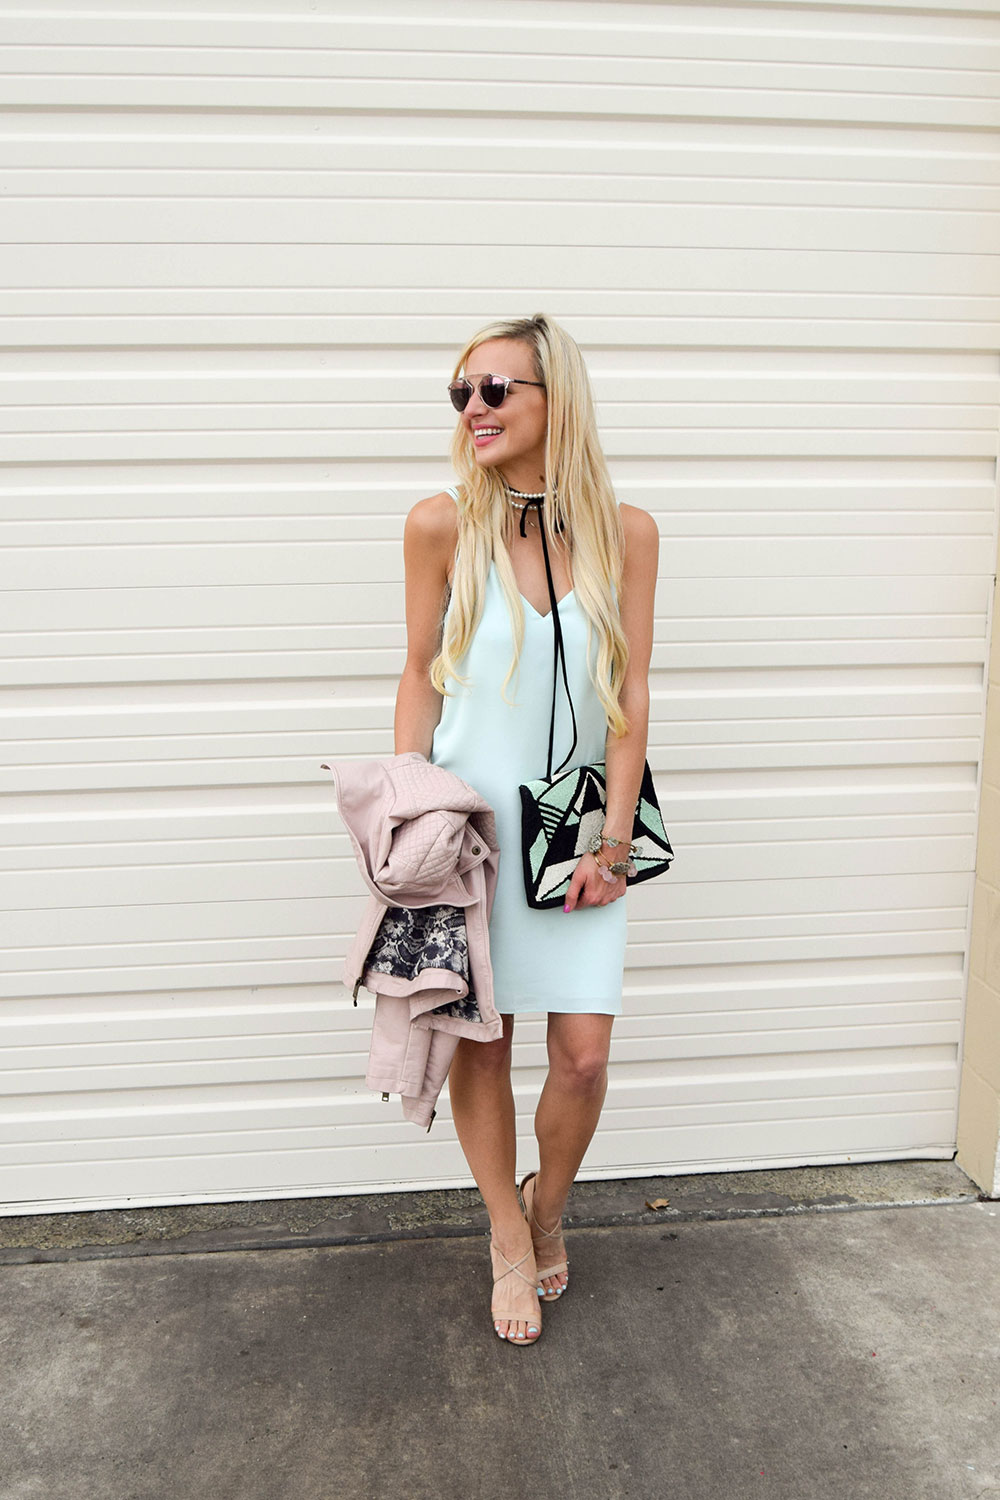 vandi-fair-dallas-fashion-blog-lauren-vandiver-southern-texas-blogger-topshop-crisscross-strap-slip-dress-mint-green-pearl-black-leather-choker-7